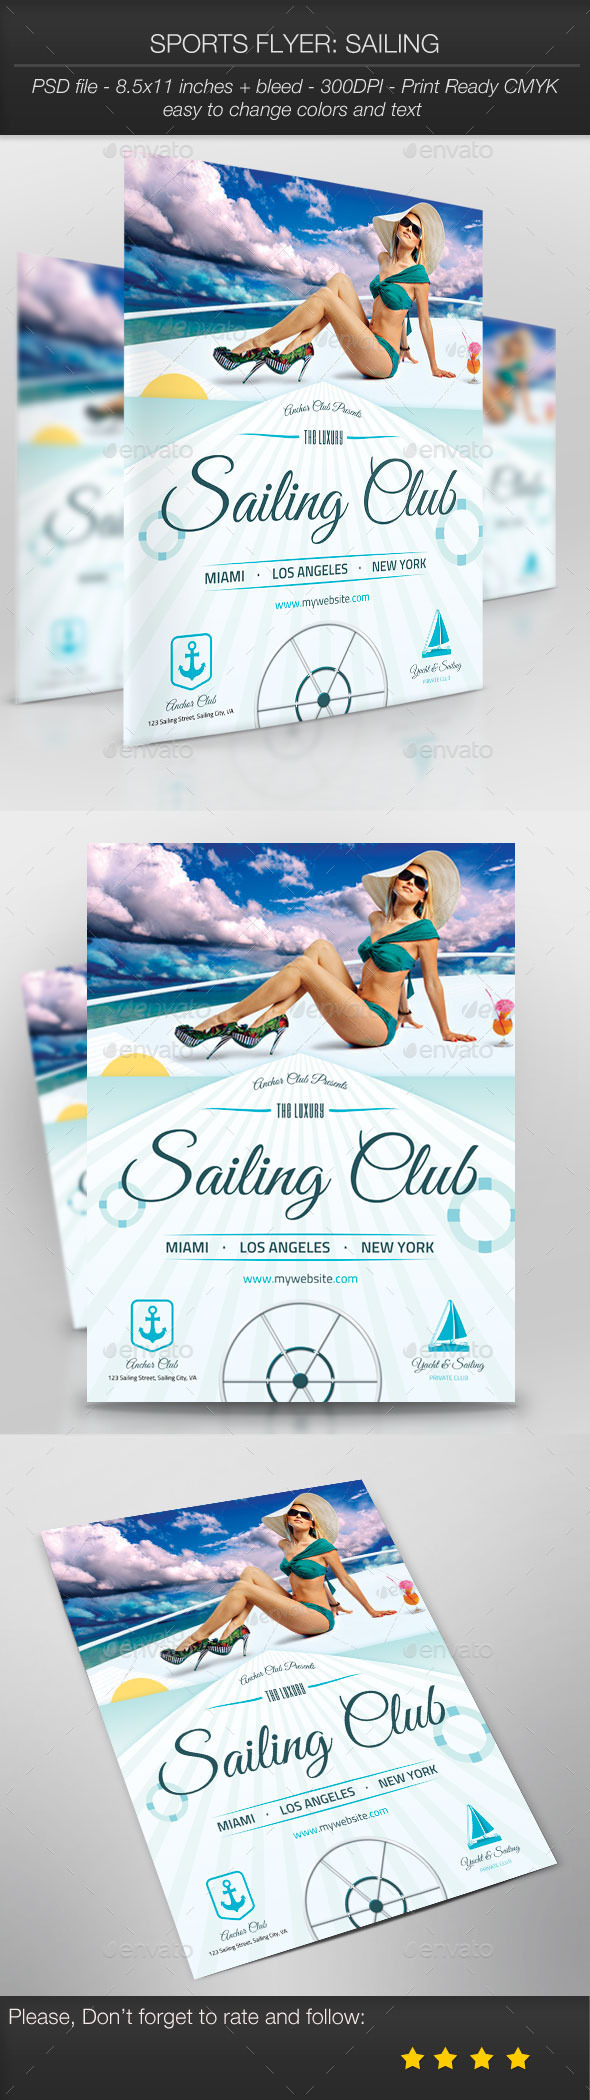 Sports Flyer: Sailing - Sports Events